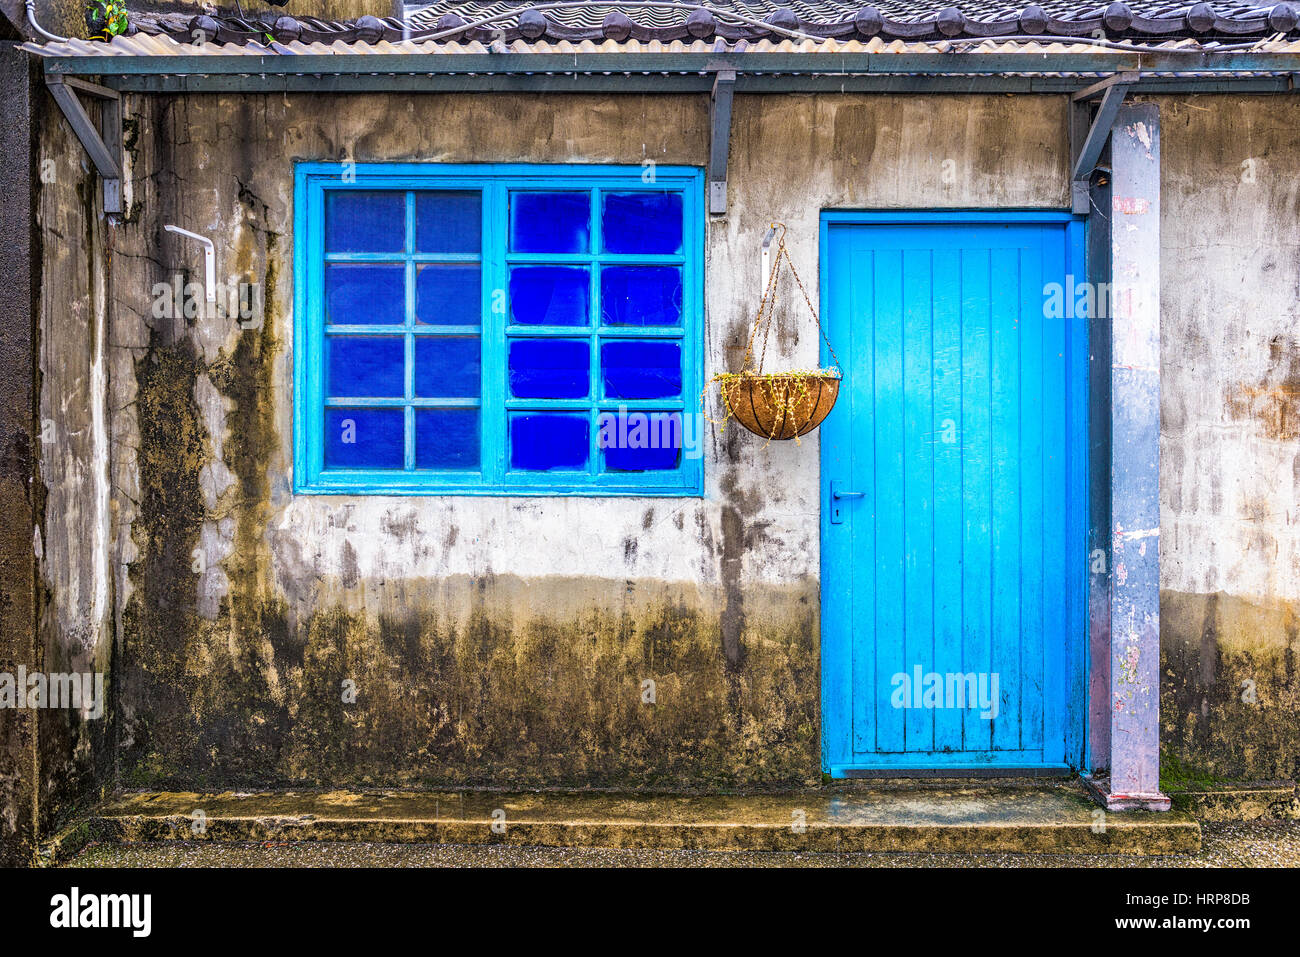 Taipei, Taiwan historic building facade in Military Families Community Park. - Stock Image